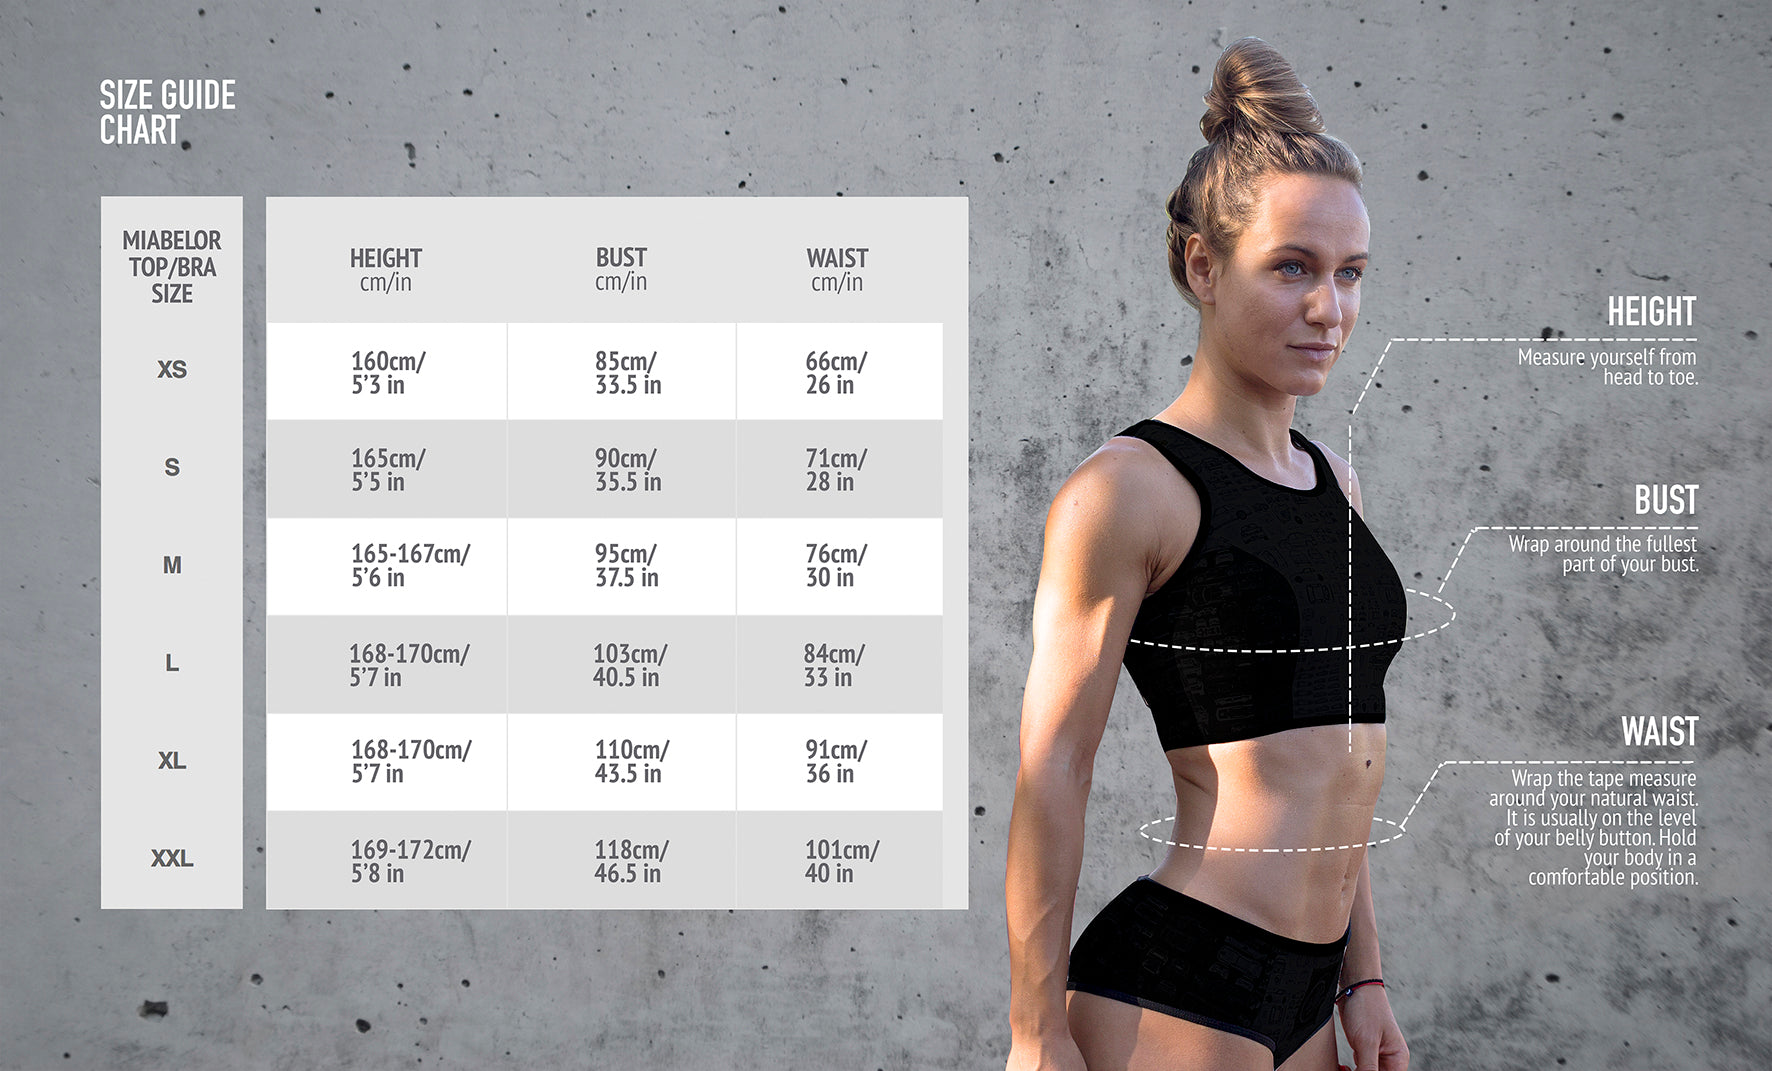 miabelor size chart, fitment guide table, sports bra, top , hoodie sizing